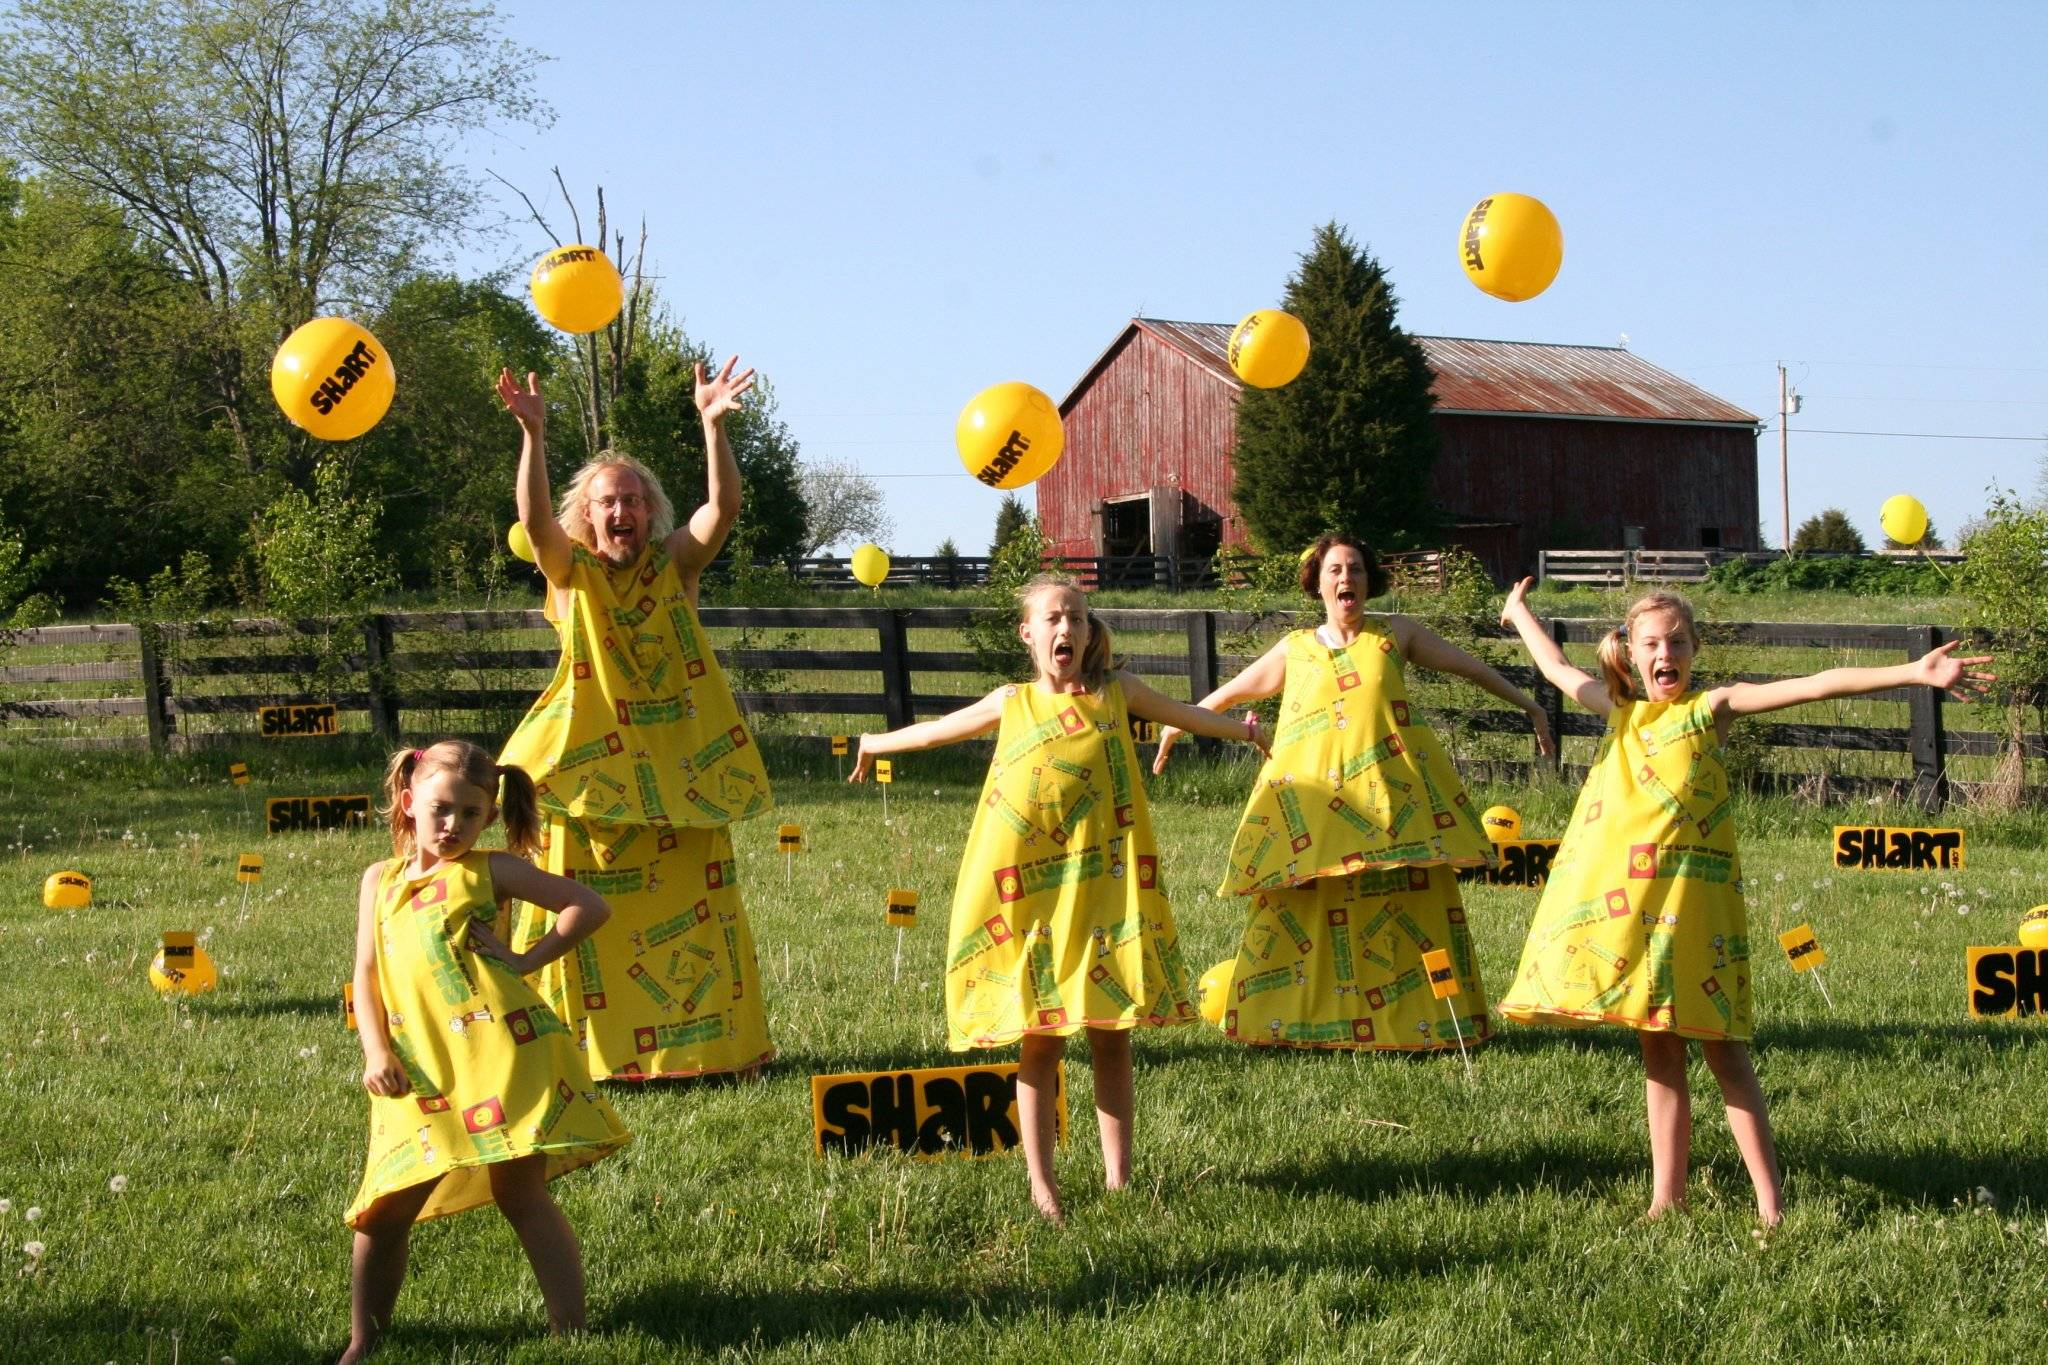 The Shart Family in a field in Bright Yellow Shart Gowns jumping and throwing Shart.com beachballs in the air